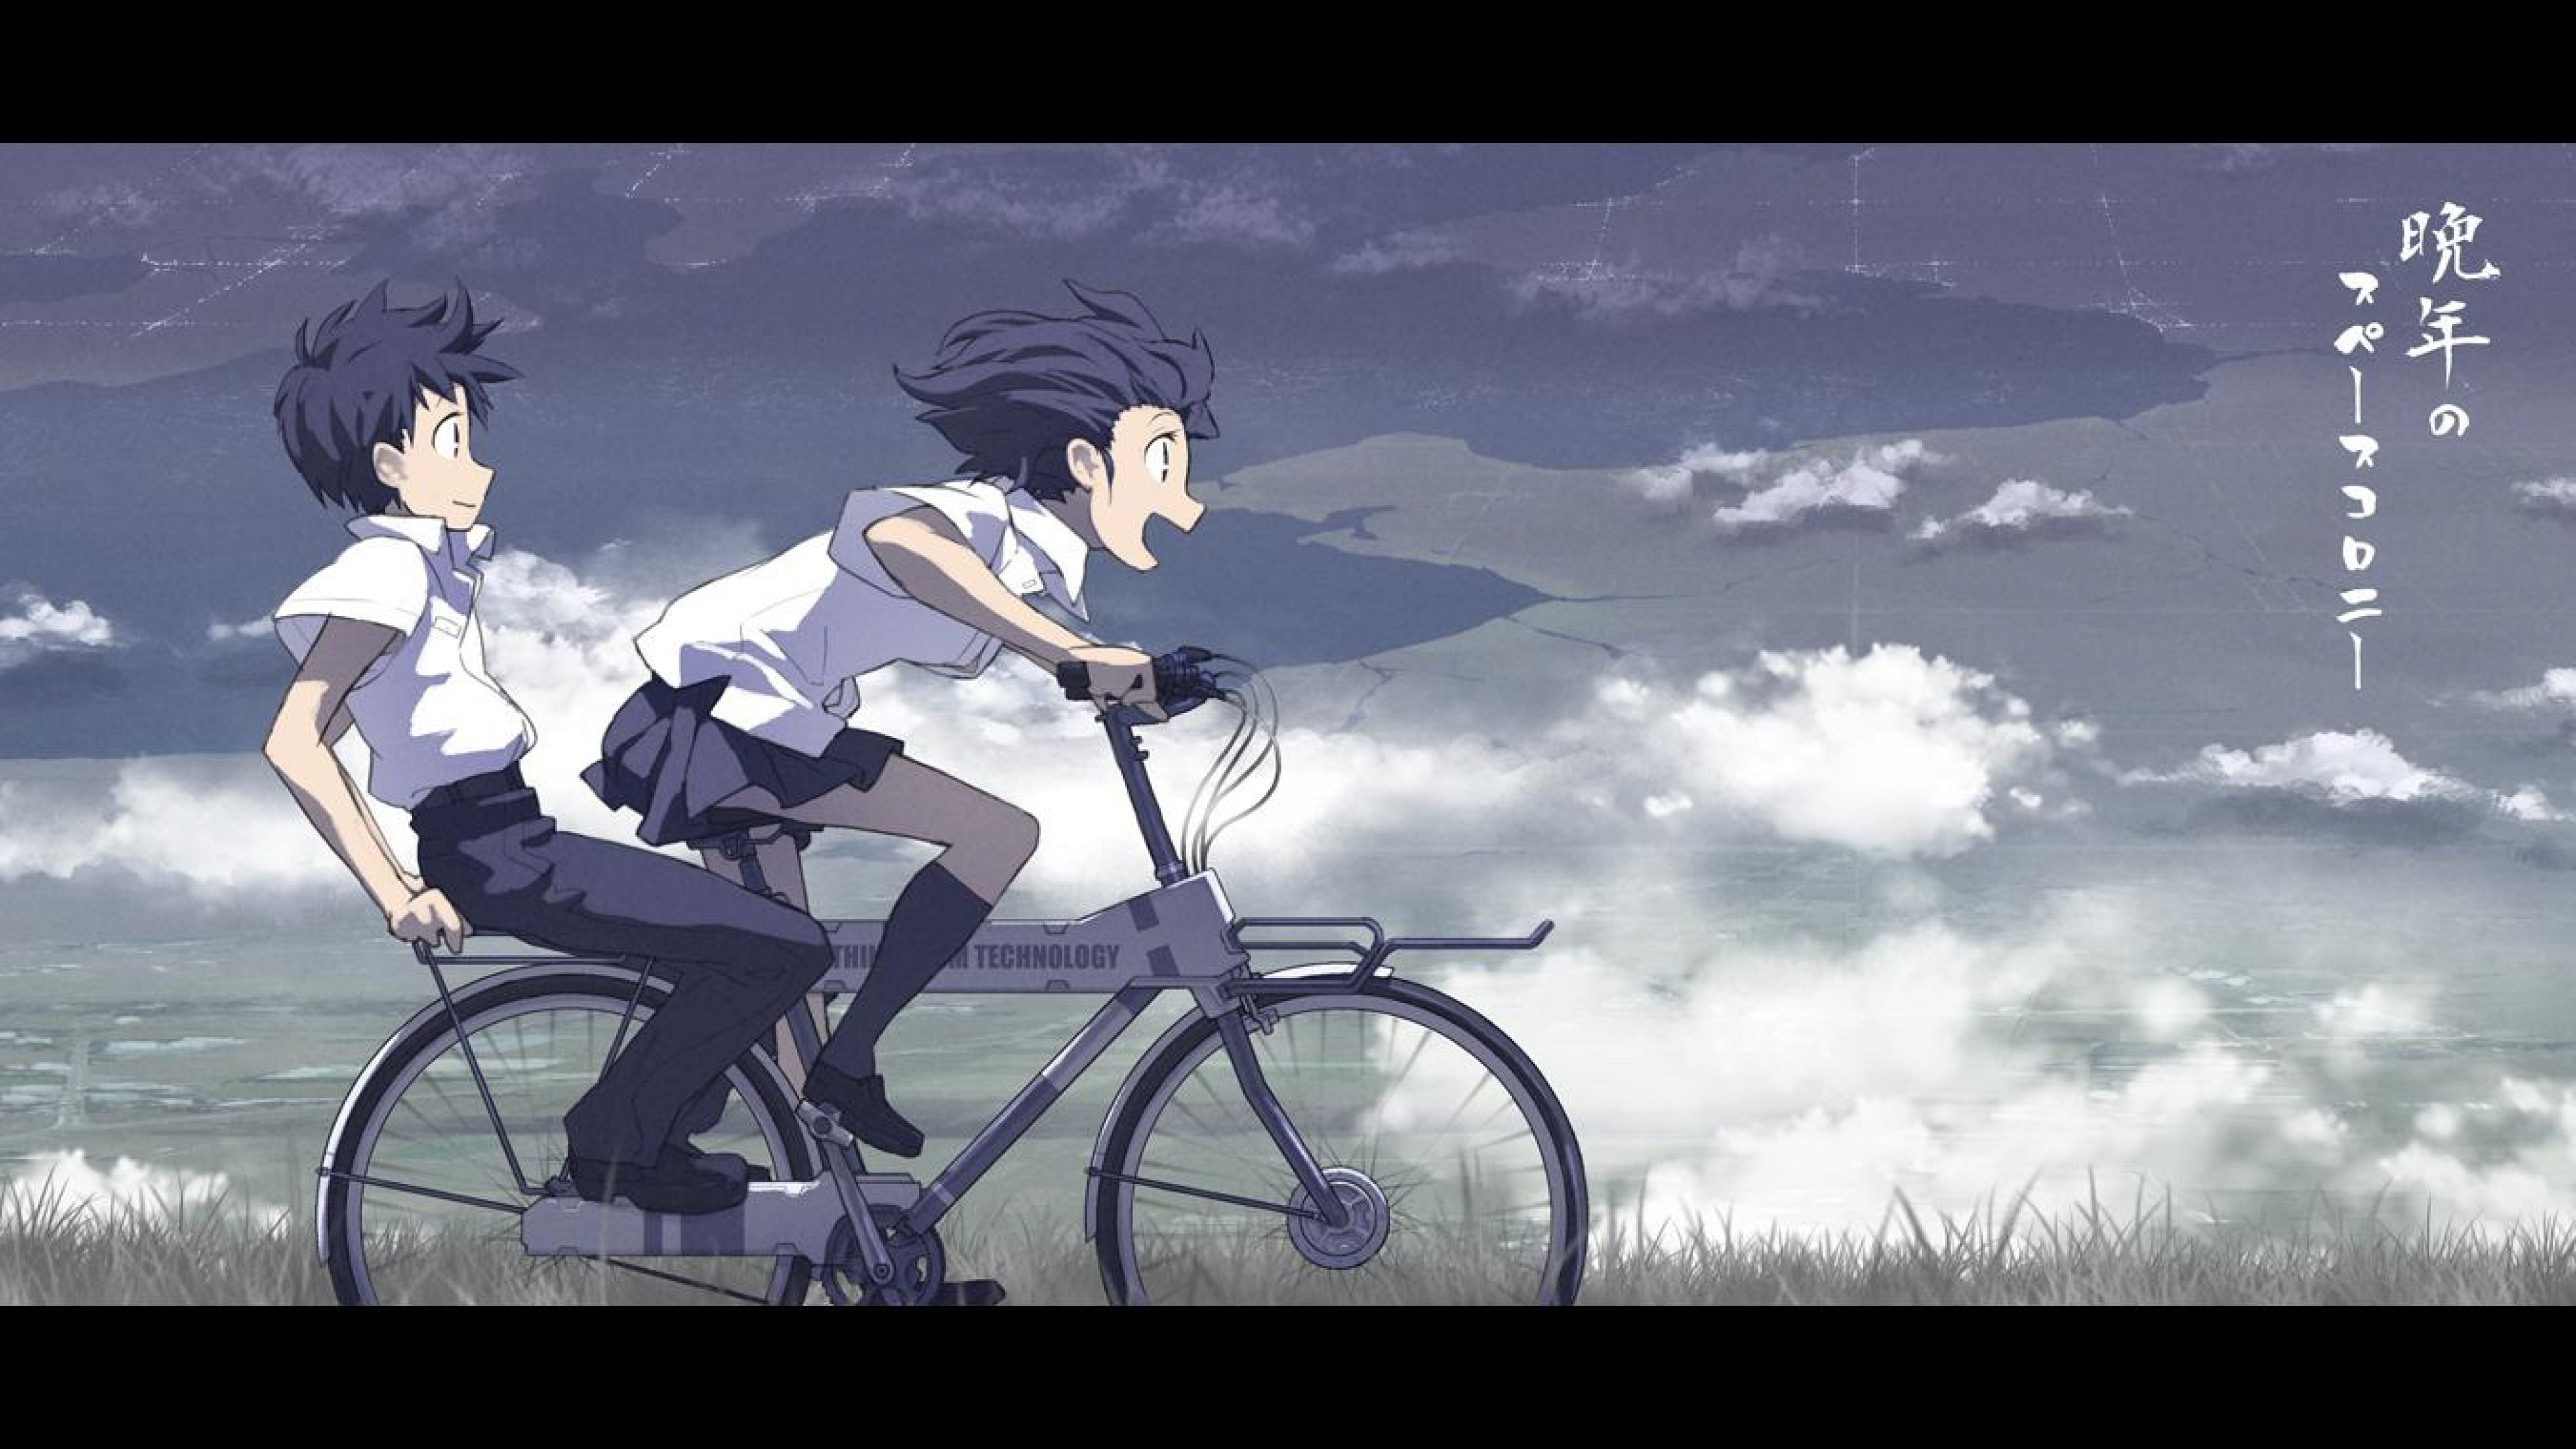 Anime Boys Riding A Bicycle Hd Wallpaper 4k Ultra Hd Hd Wallpaper Wallpapers Net